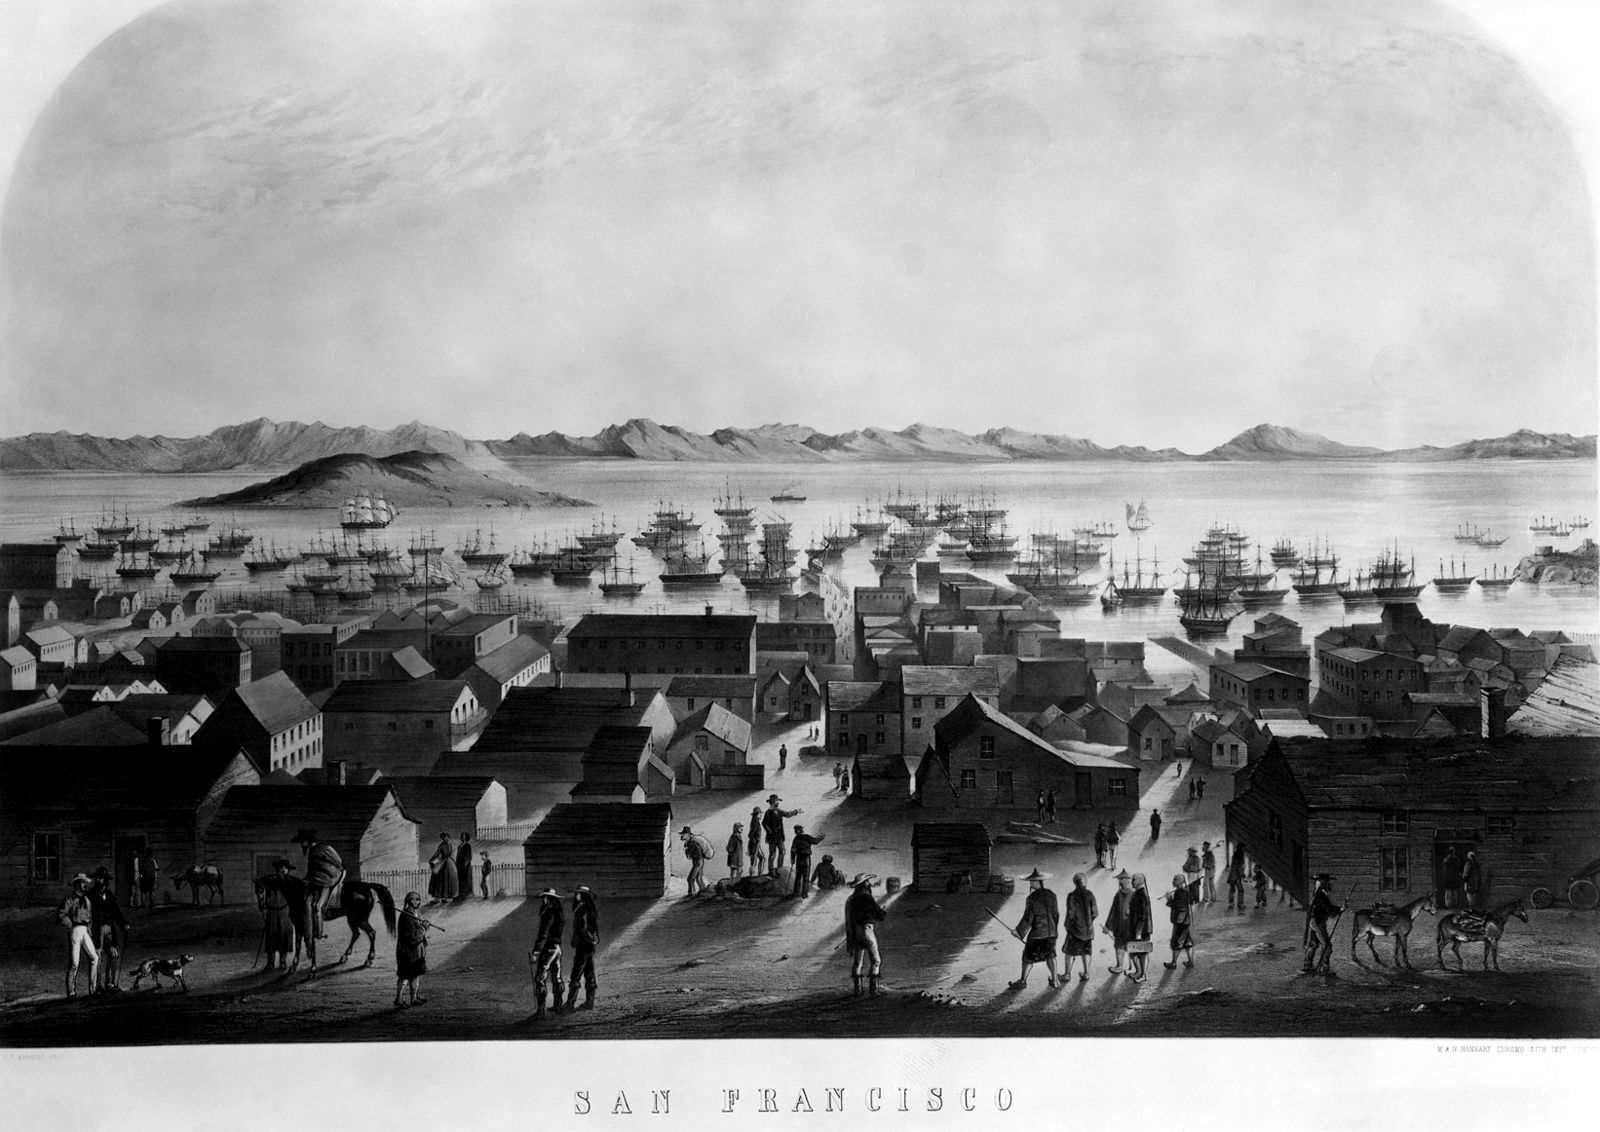 San Francisco waterfront during the Gold Rush. The first waterfront strike occurred on May 26, 1851.